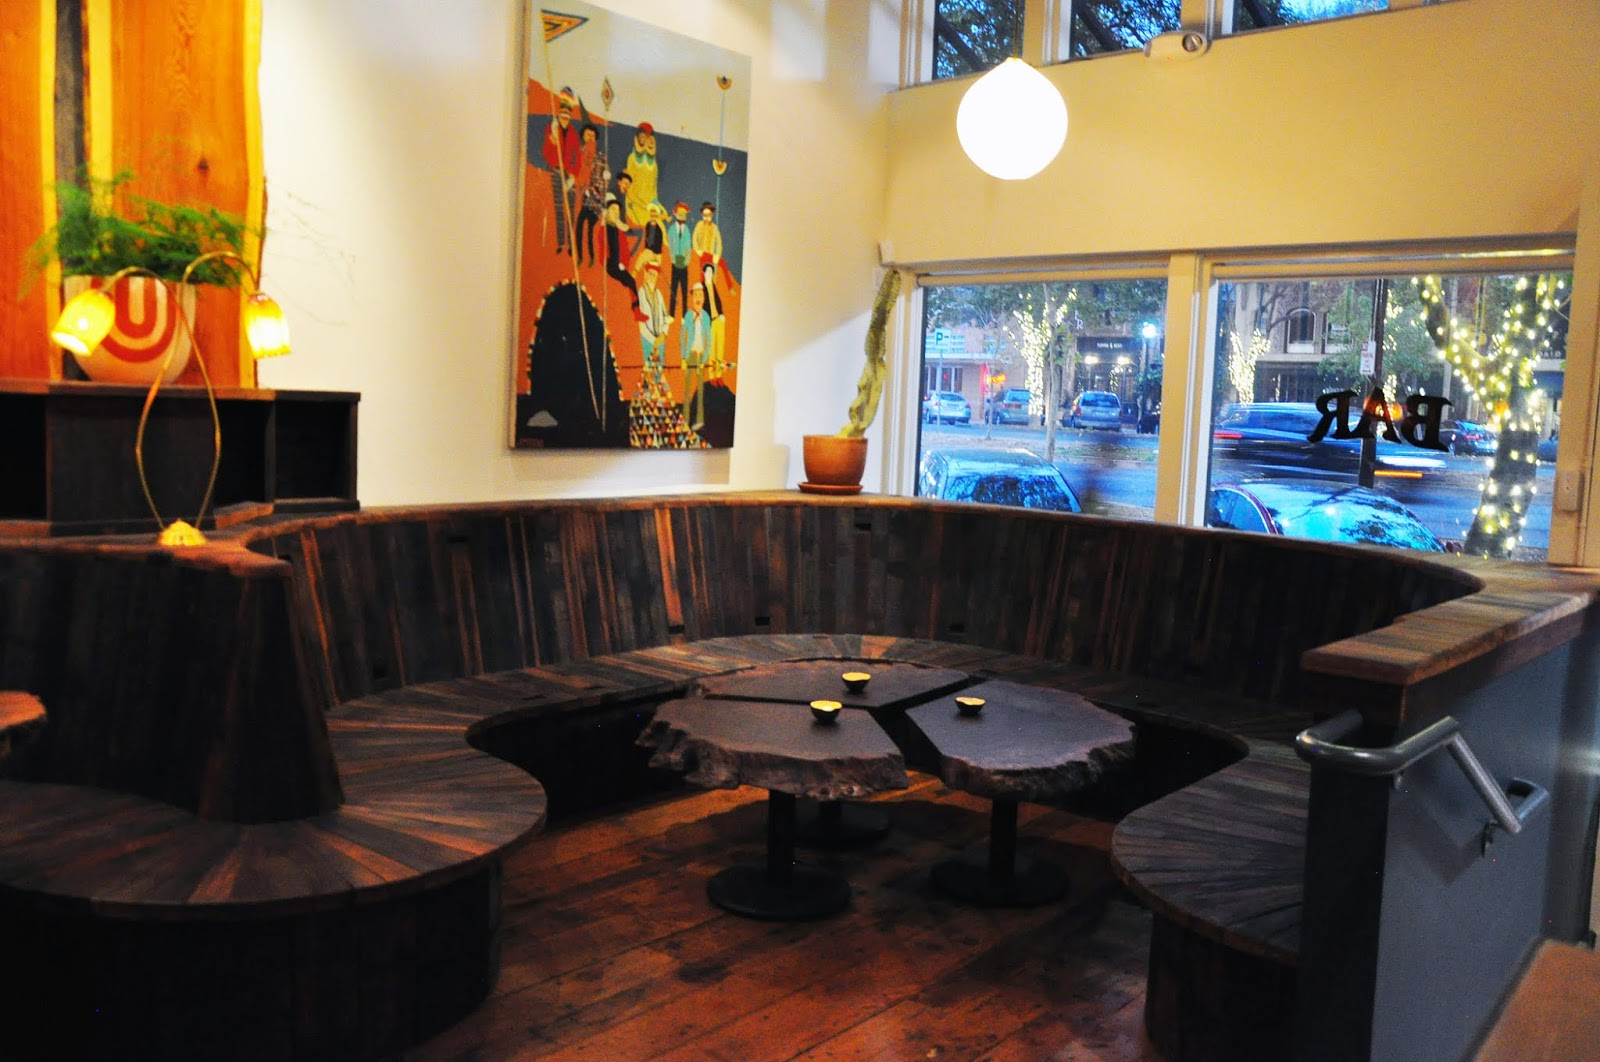 Area At The Corner Office Western Pacific Have Their Own Distinct Characters Different Use Of Reclaimed Redwood And Other Interior Decor Elements